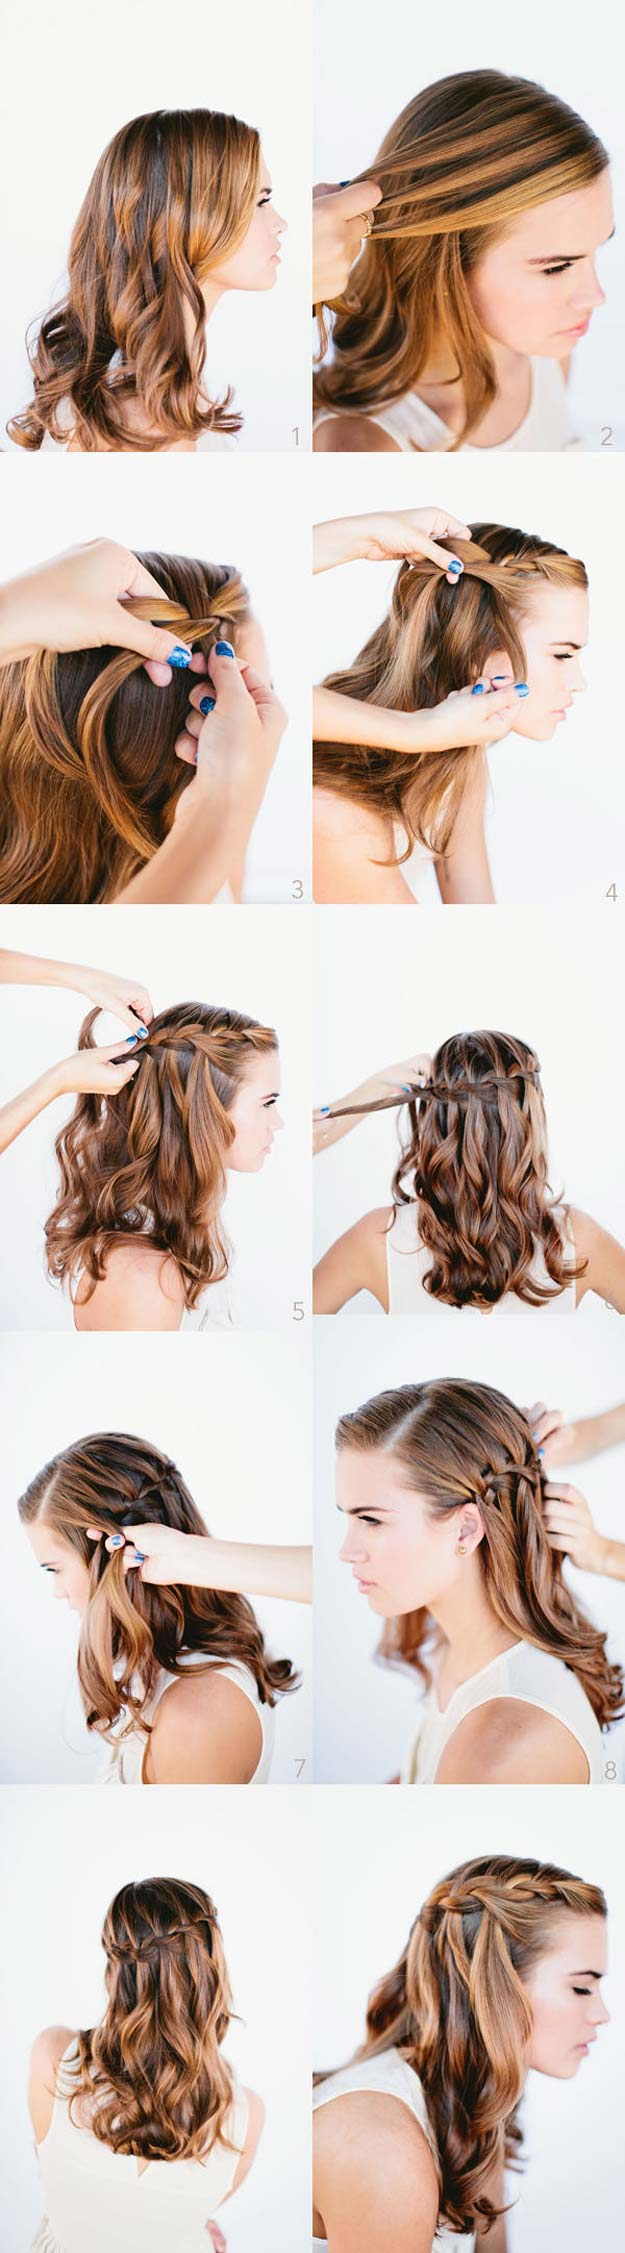 Best Hair Braiding Tutorials - Waterfall Braid Wedding Hairstyles For Long Hair - Easy Step by Step Tutorials for Braids - How To Braid Fishtail, French Braids, Flower Crown, Side Braids, Cornrows, Updos - Cool Braided Hairstyles for Girls, Teens and Women - School, Day and Evening, Boho, Casual and Formal Looks #hairstyles #braiding #braidingtutorials #diyhair